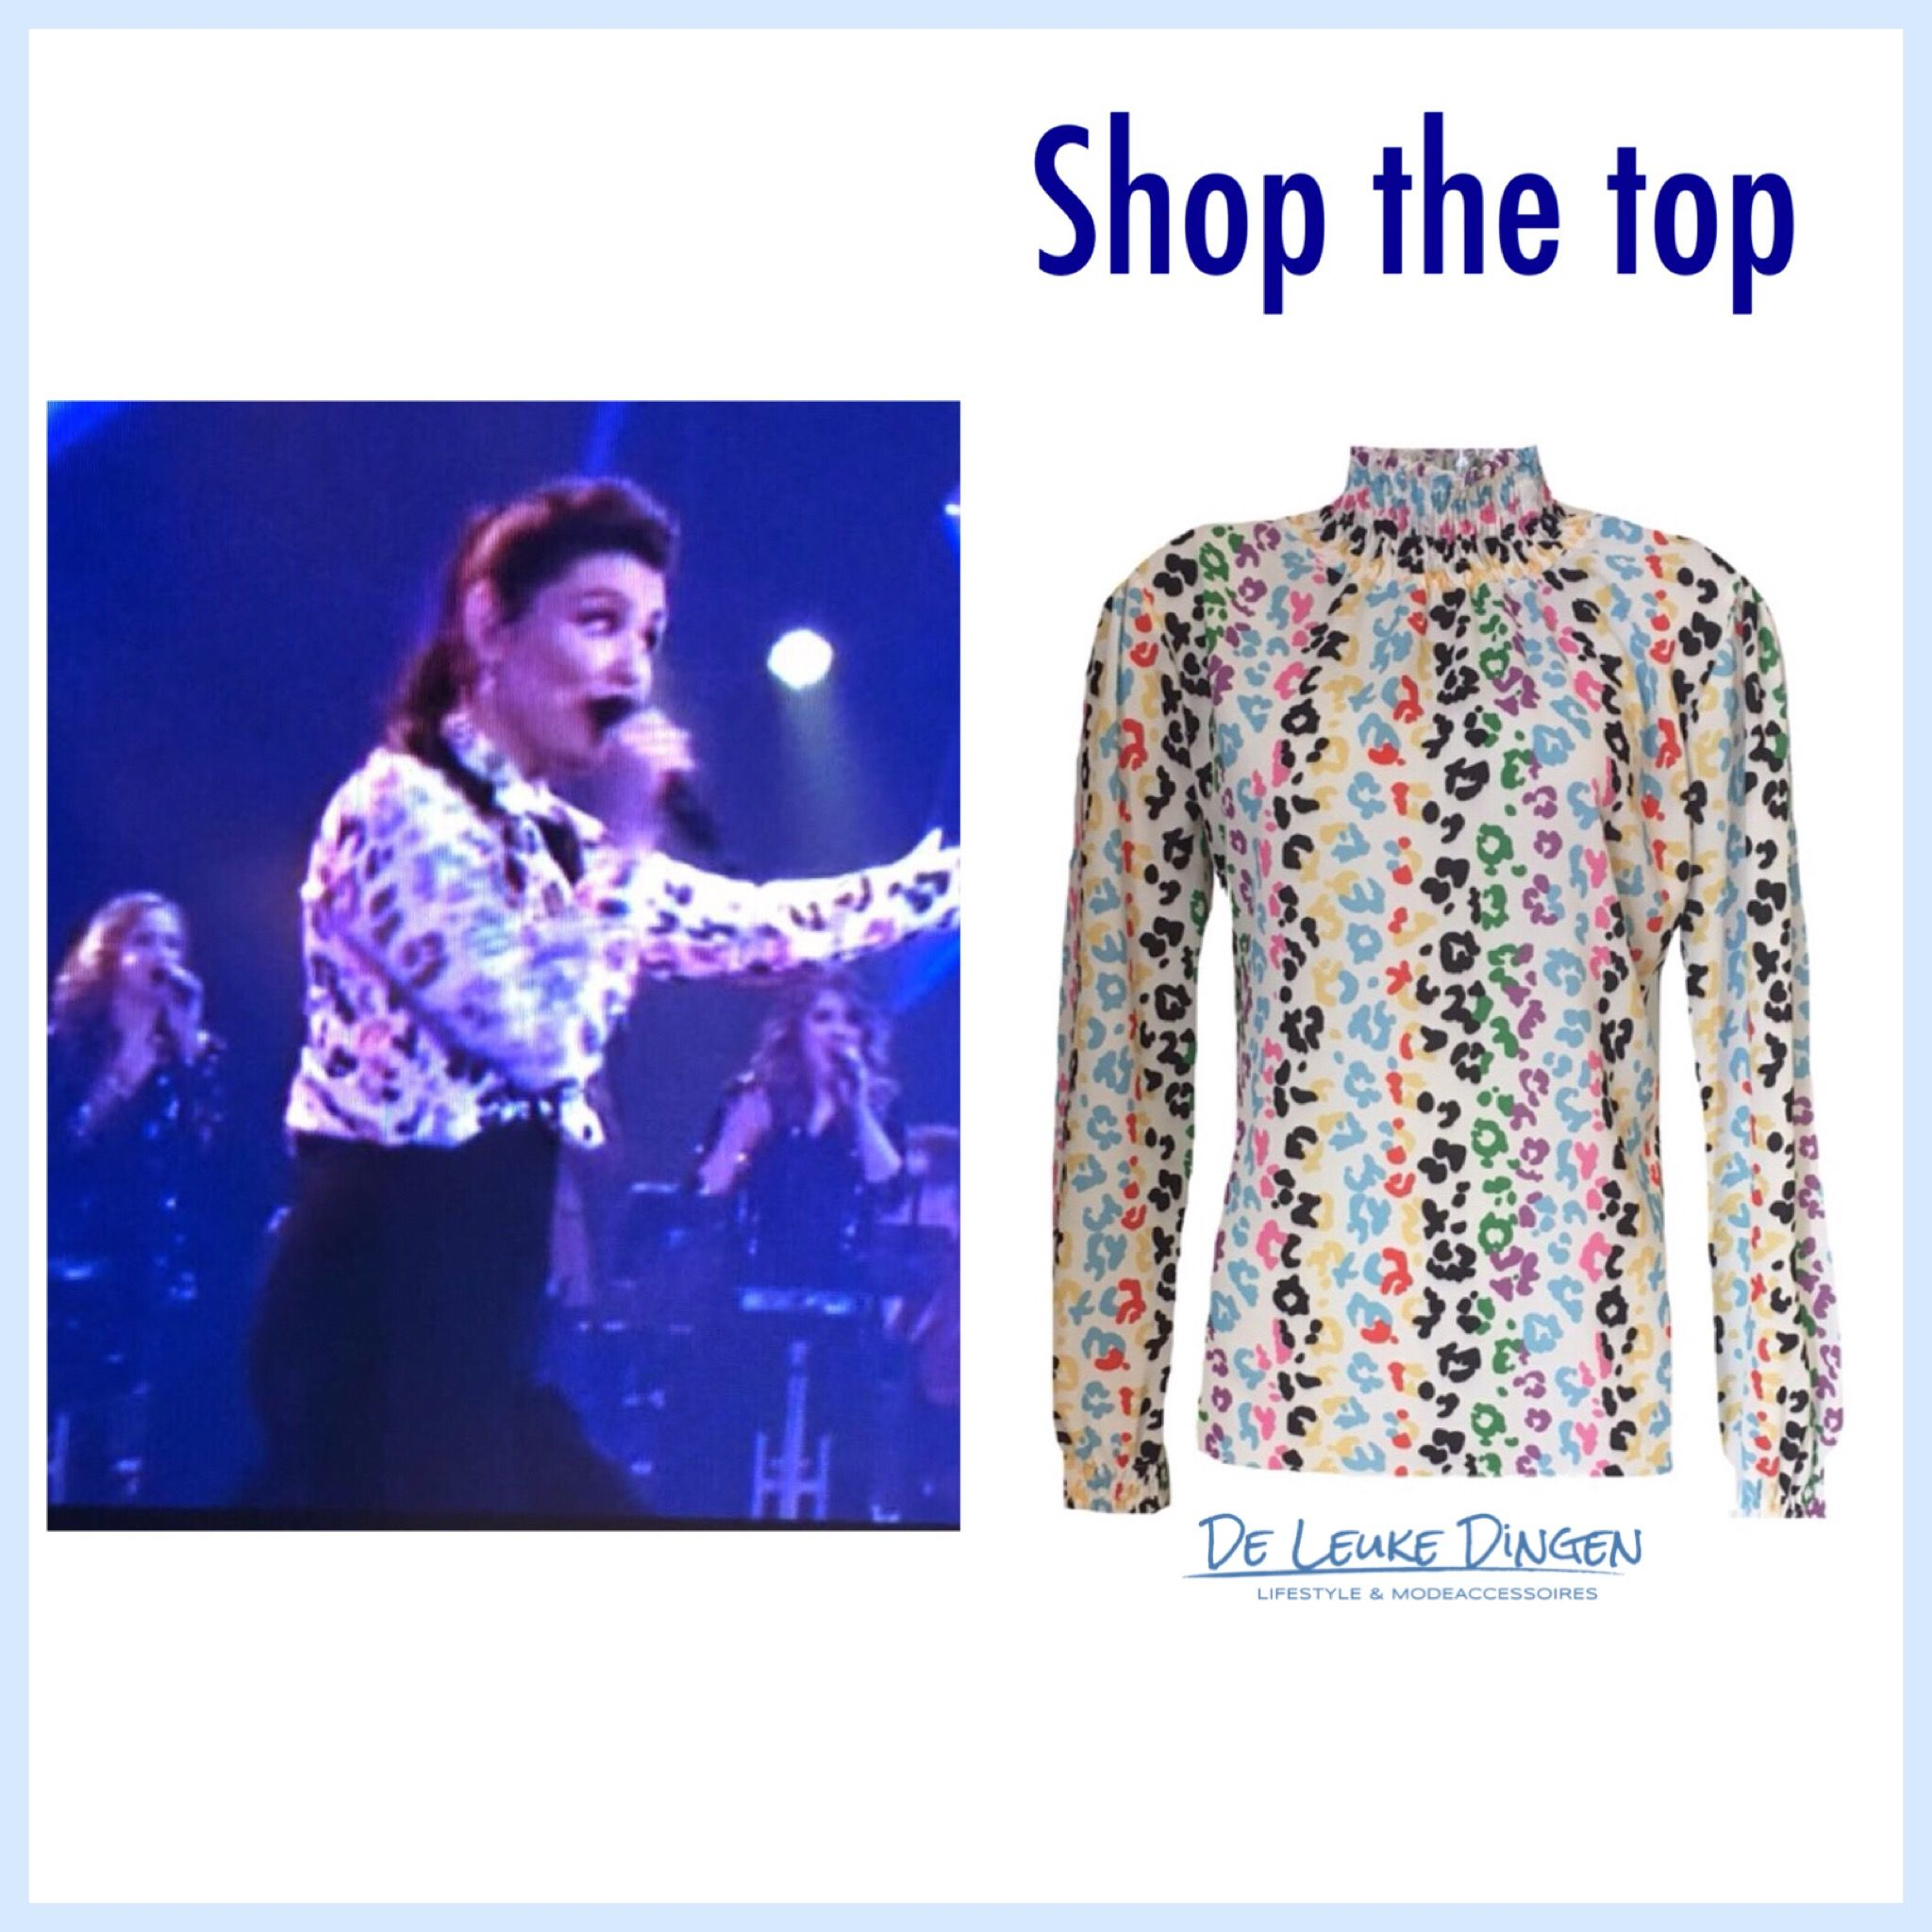 Heb jij deze vrolijke 'it takes two' rtl4 top al? Shop nu online via https://www.deleukedingen.nl/product/gekleurde-leopard-top/  #shopping #shoppingonline #shopthelook #monday #startanewweek #fashion #top #print #collourfull @deleukedingen